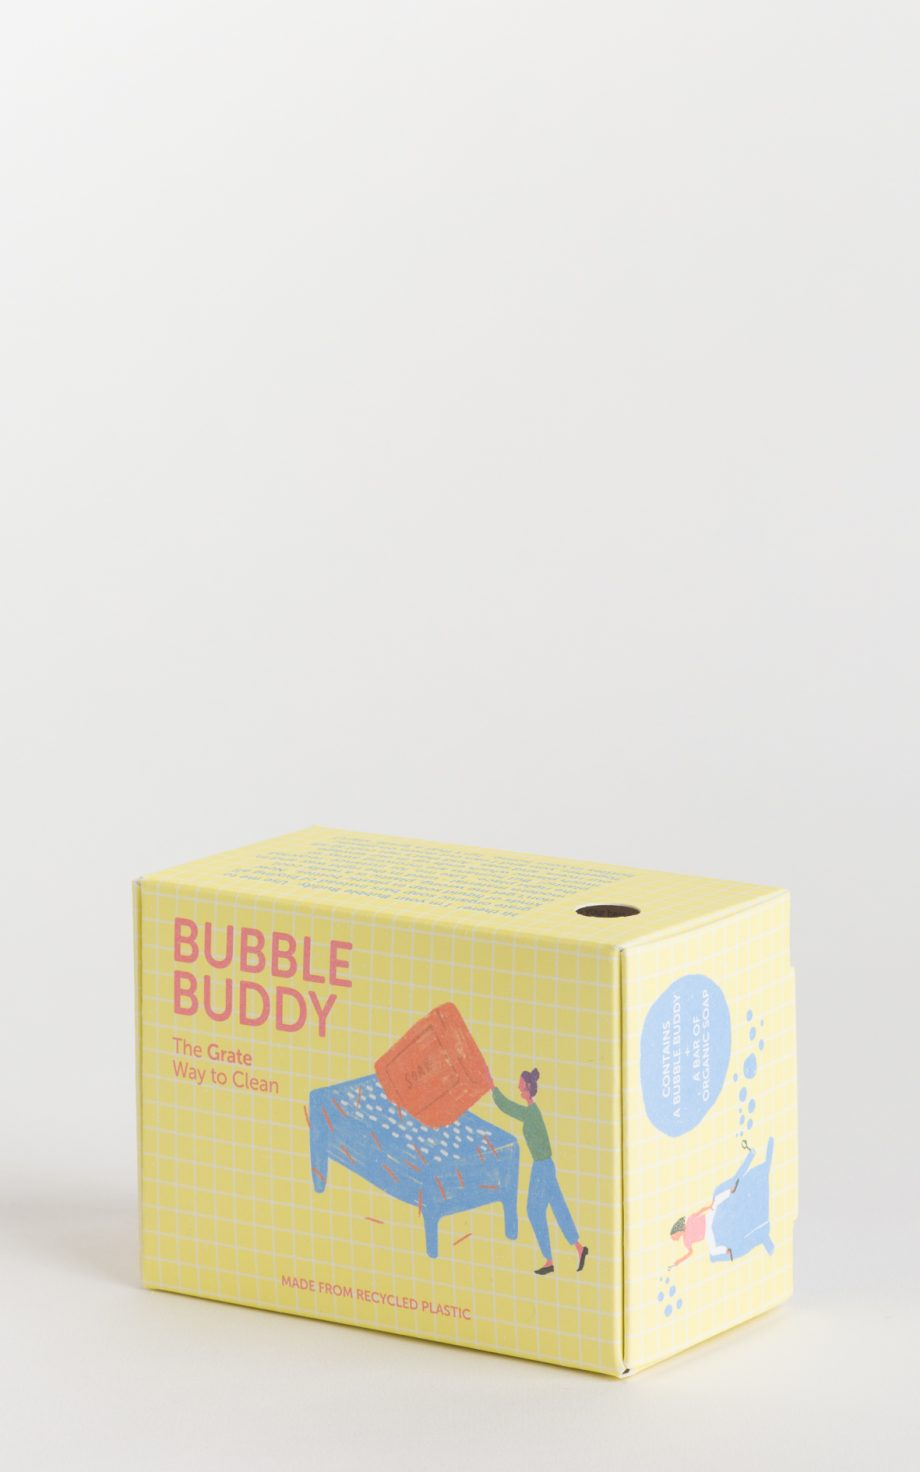 Bubble buddy packaging yellow